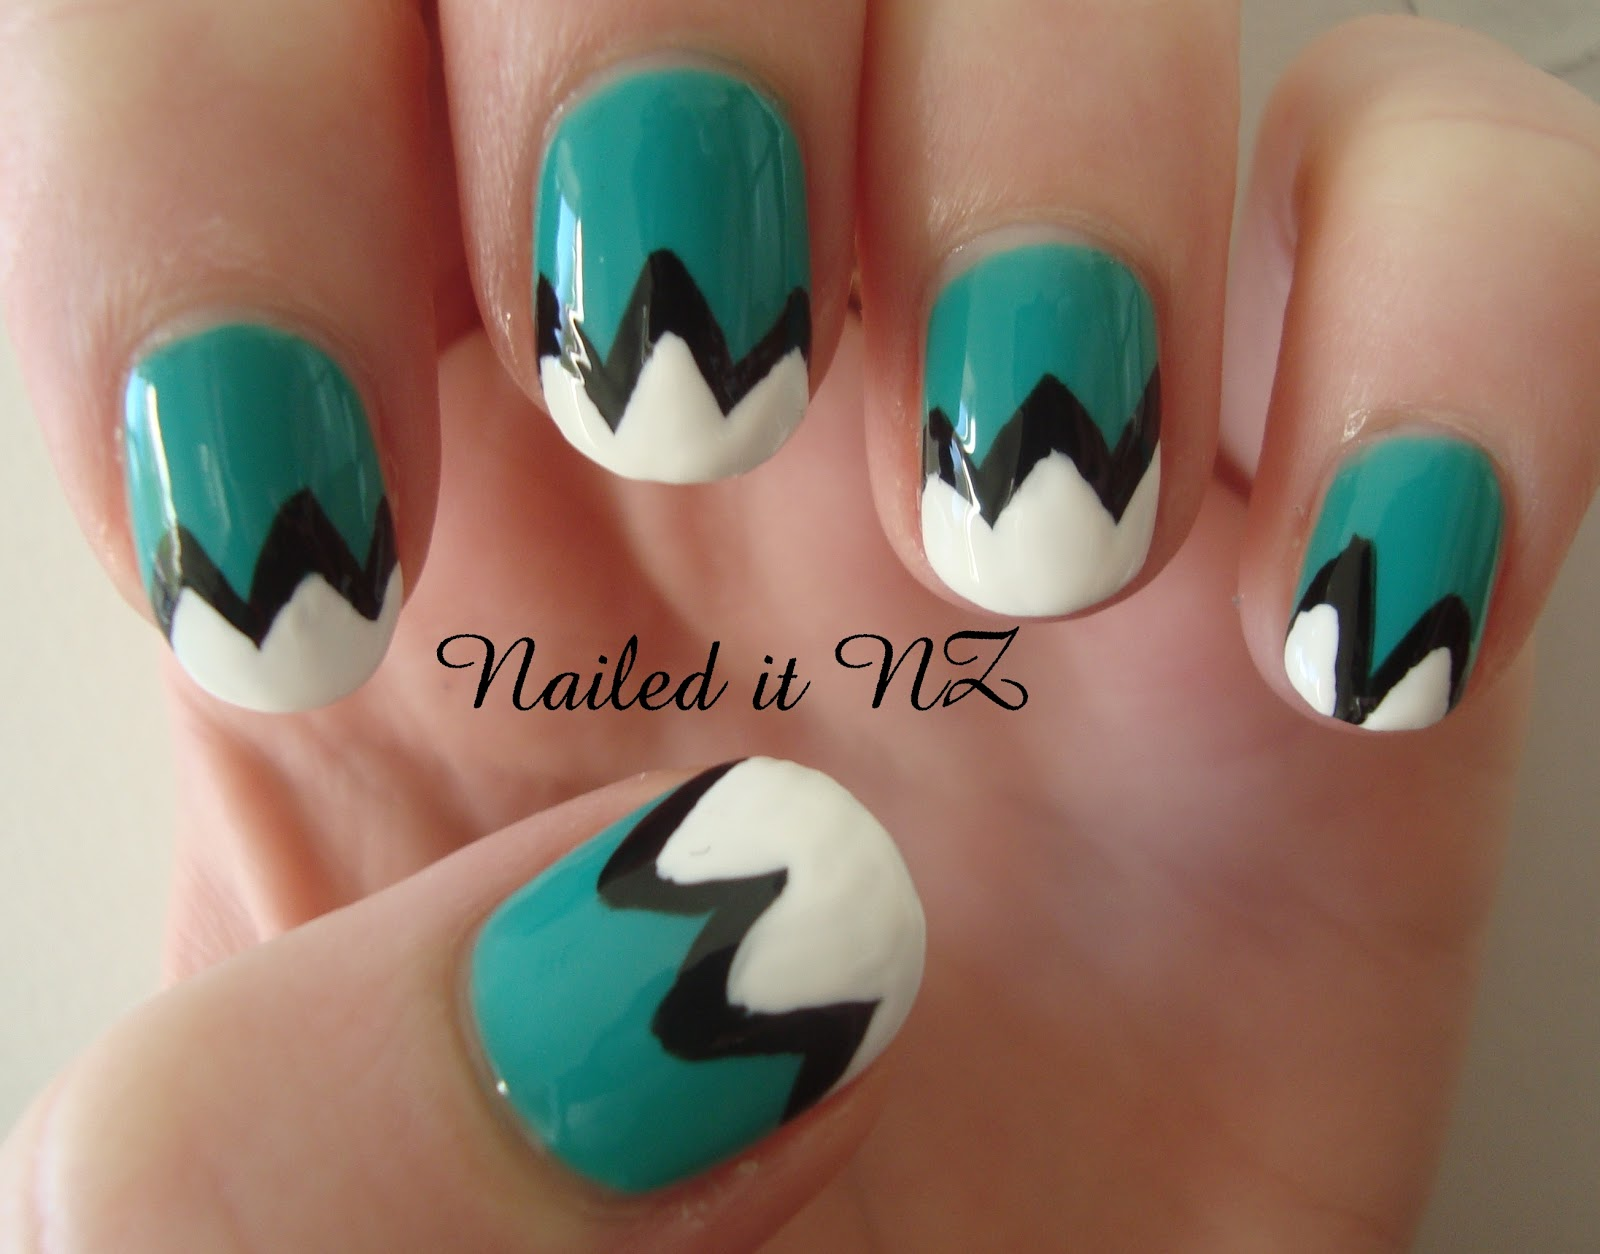 Collectionphotos 2017 10 imperssive nail art for short nails 2013 collectionphotos 2017 10 imperssive nail art for short nails 2013 2014 prinsesfo Gallery